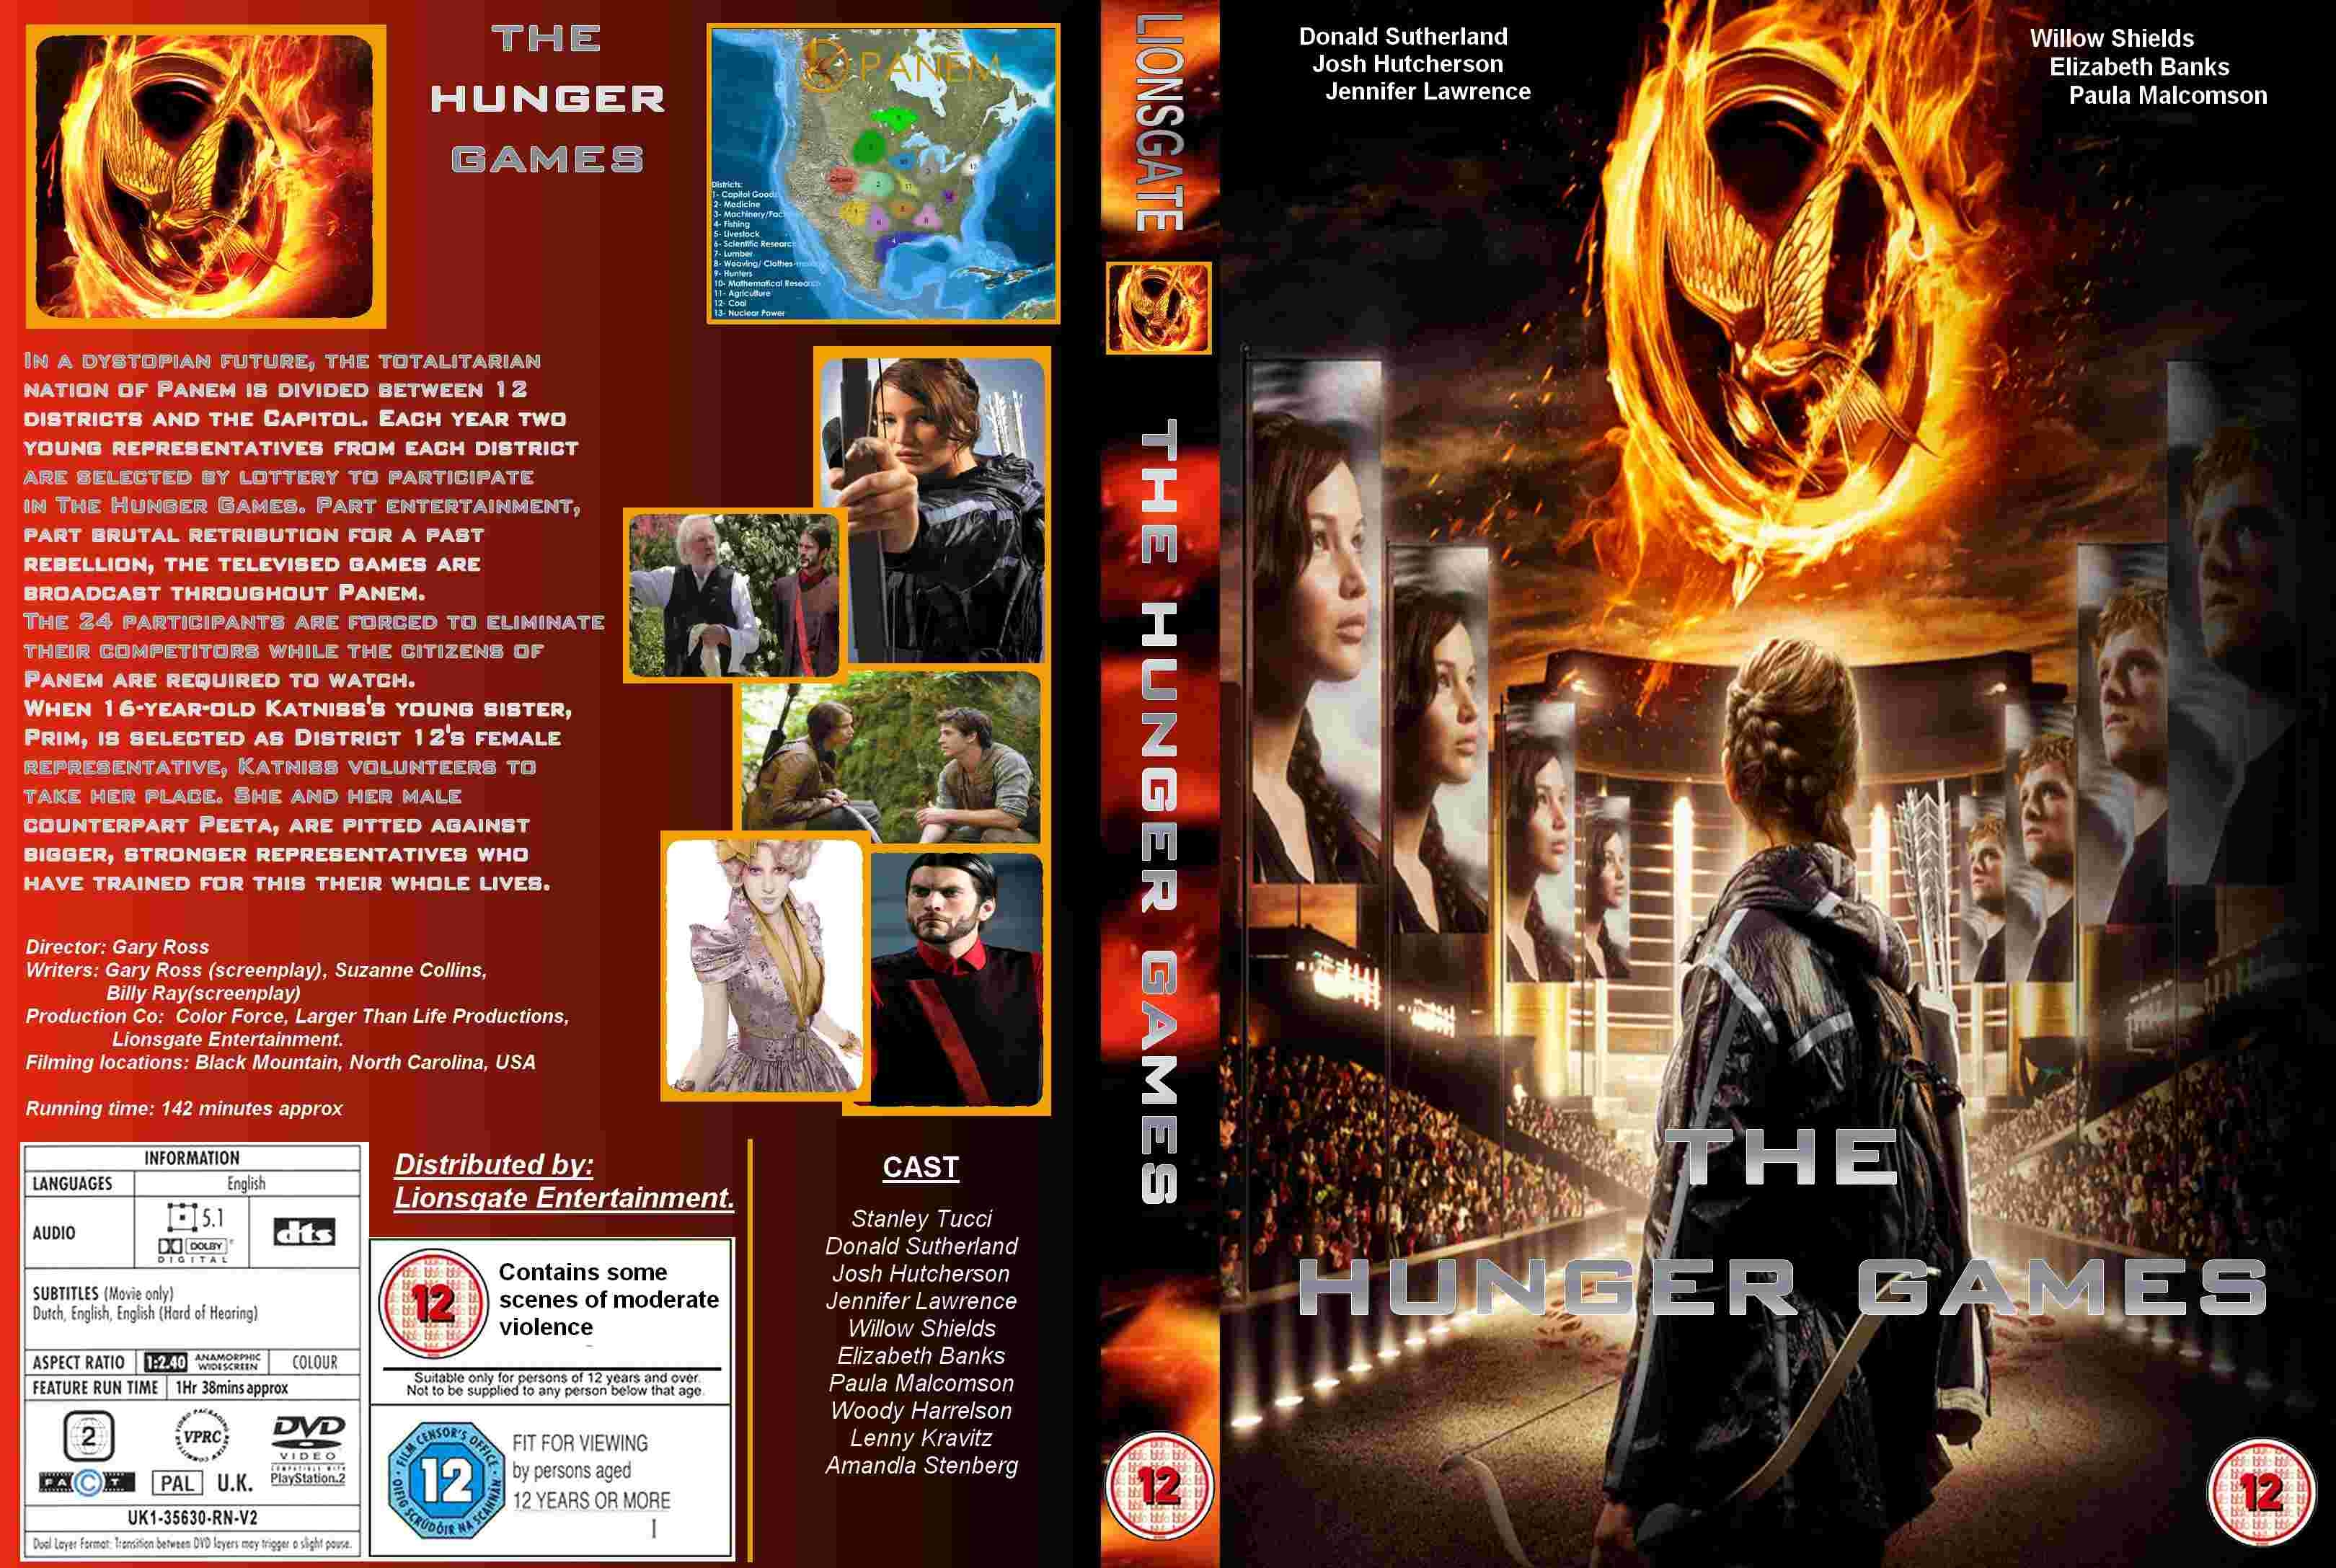 the hunger games front cover